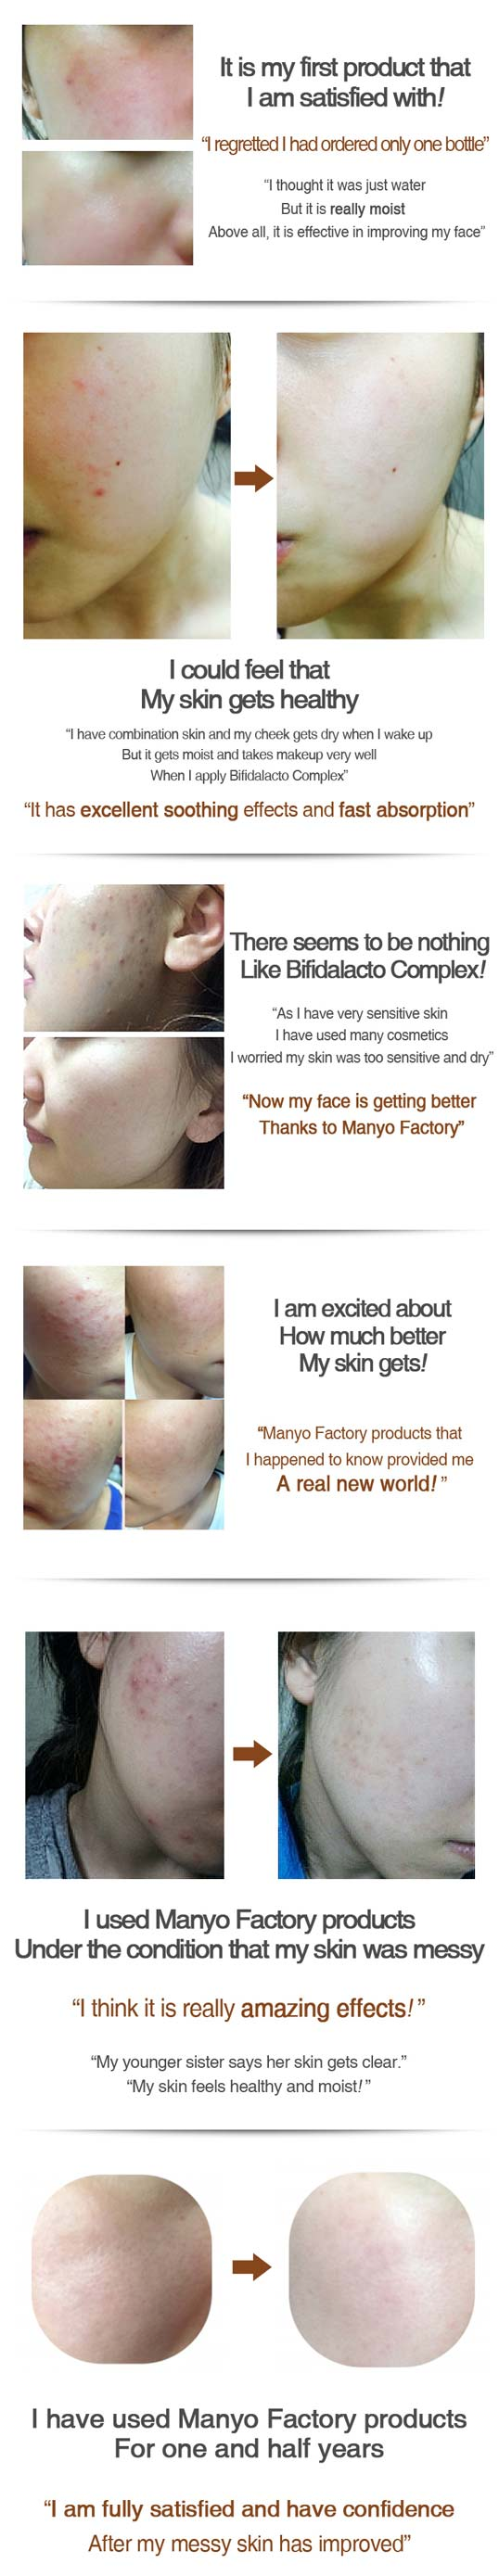 bifida ampoule essence customer feedback before and after use